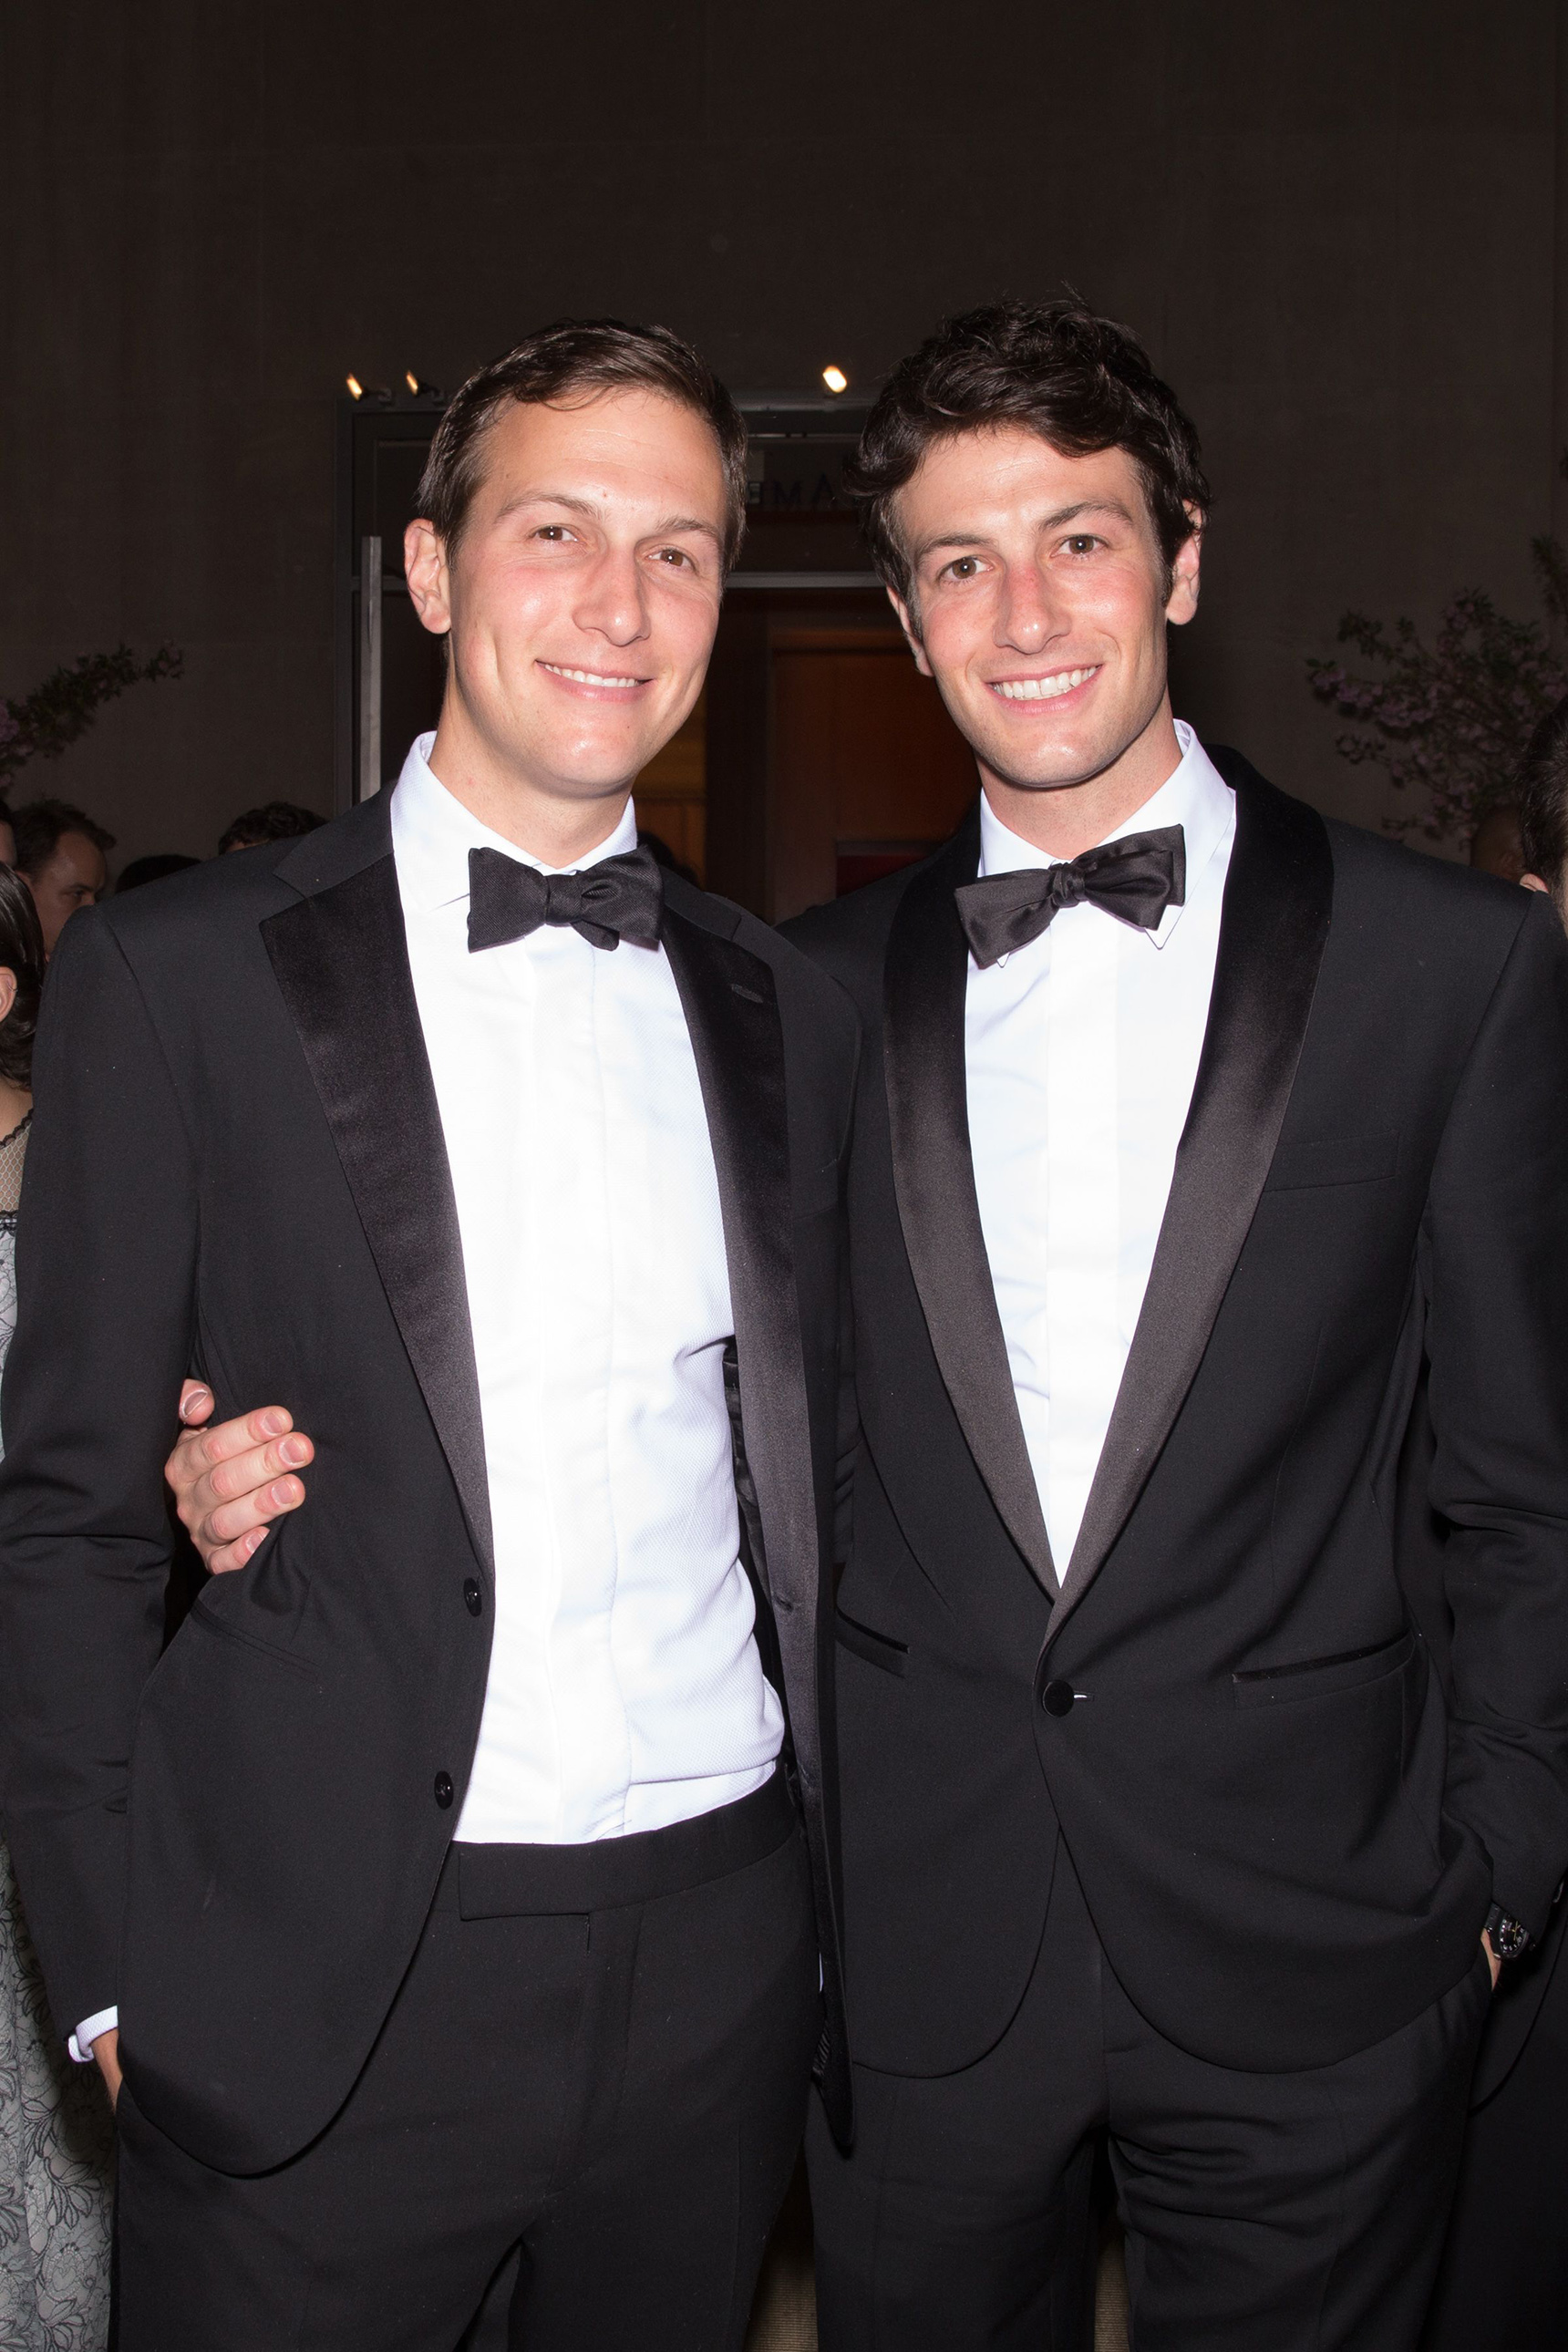 Jared Kushner with his brother Joshua at the                                Costume Institute Gala Benefit, New York, May 4, 2015.